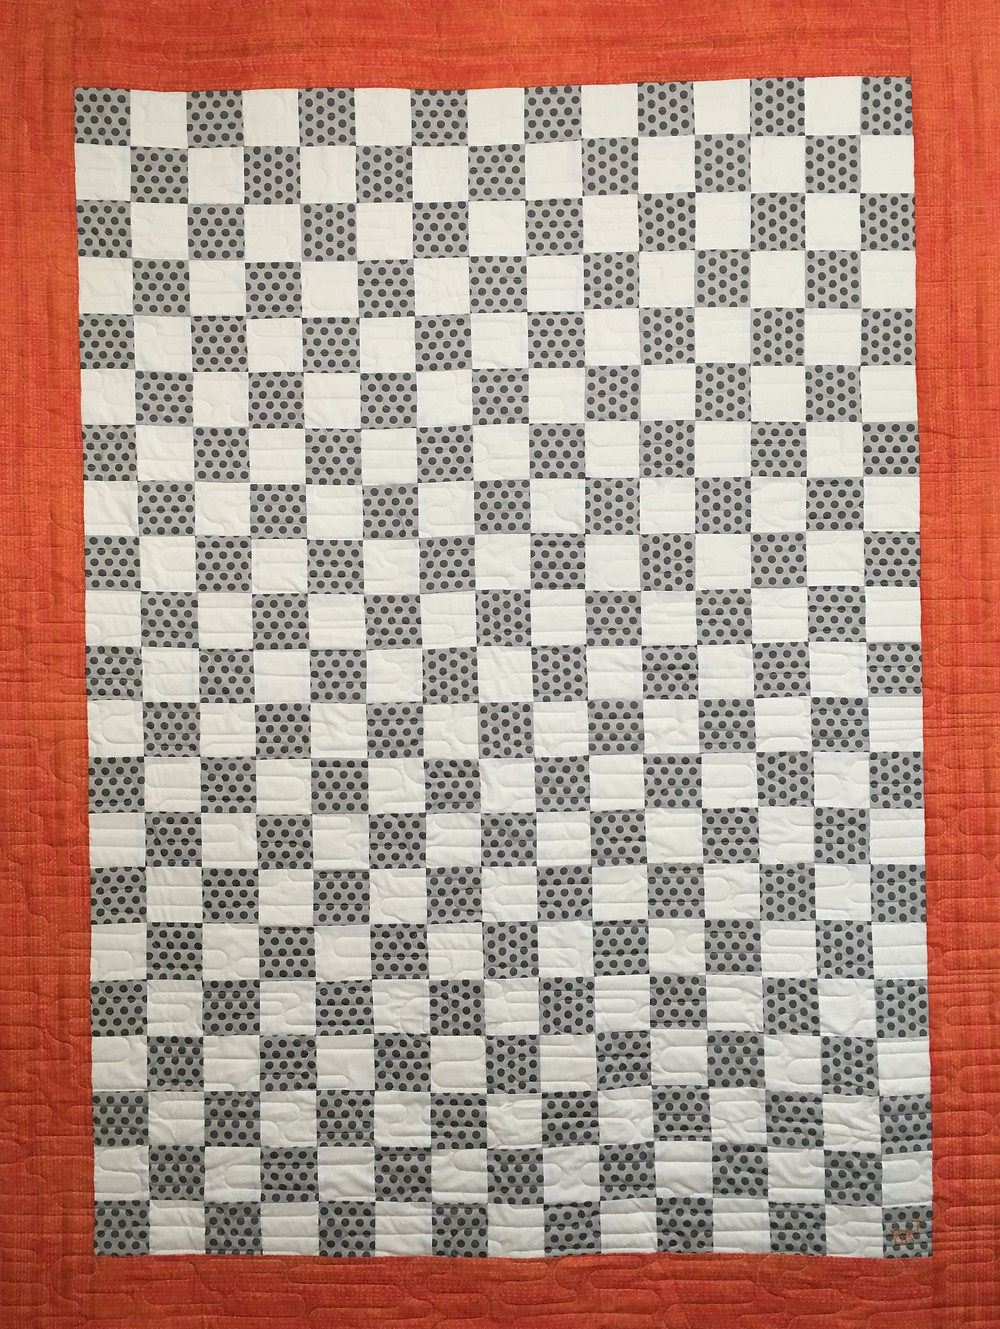 Gray and White Checkerboard quilt by Lisa Long